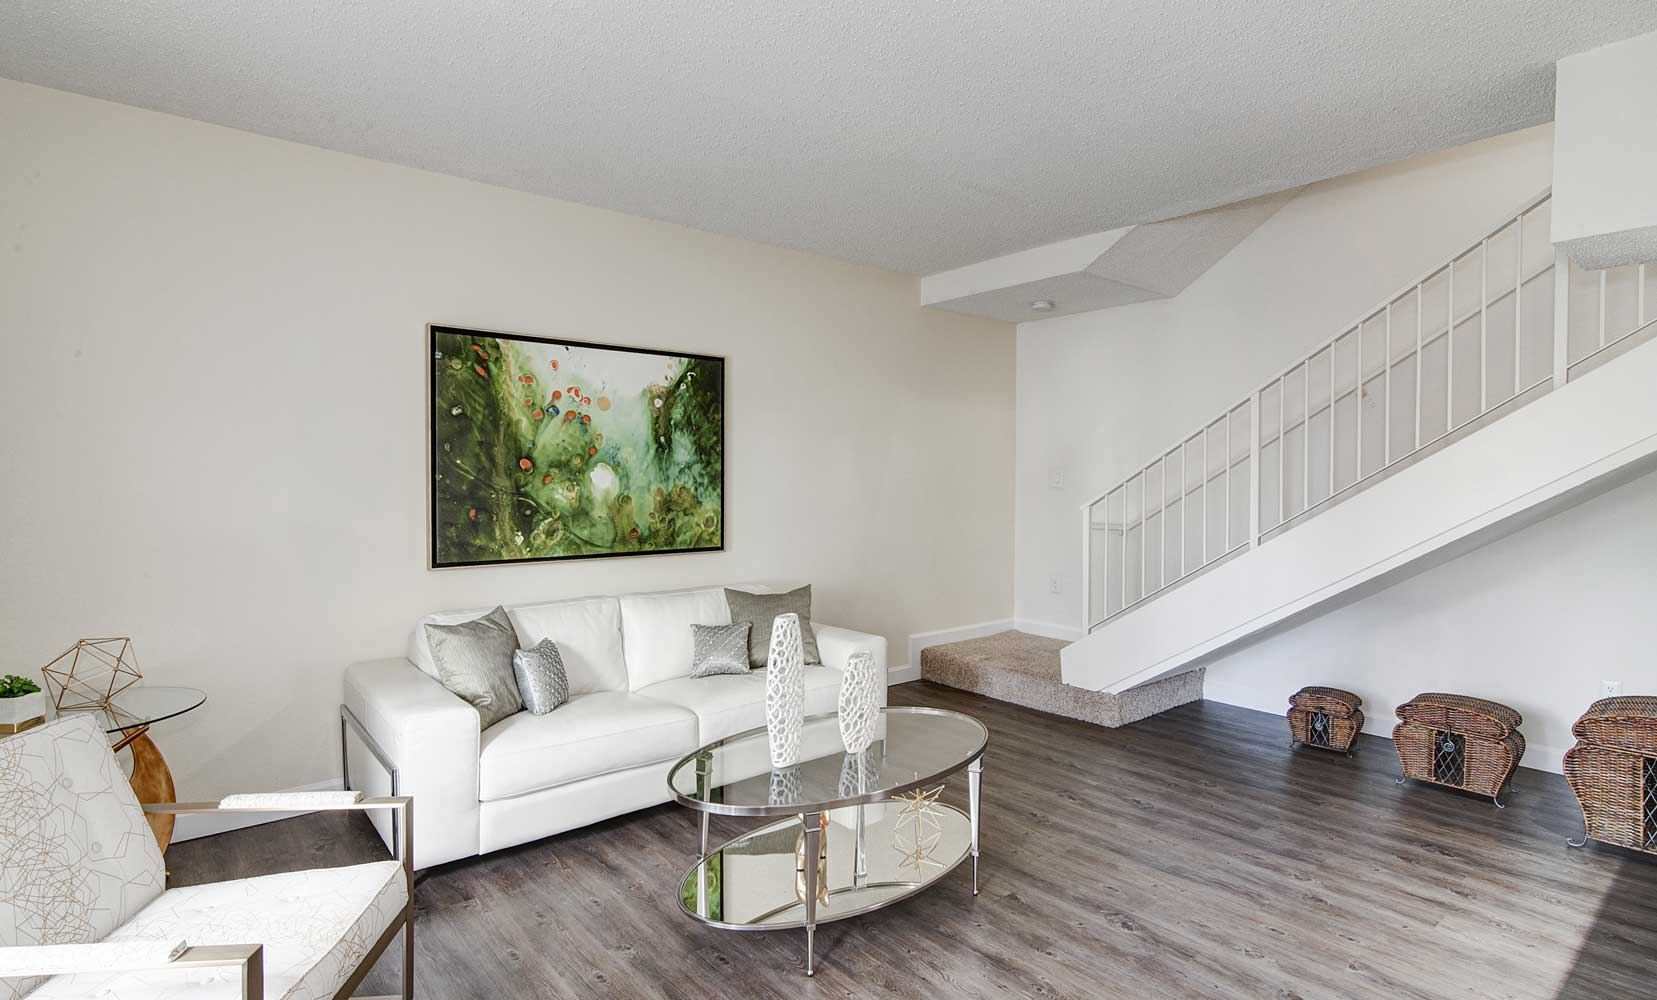 New/Renovated Interior at Waterford Point Apartments in Miami, Florida